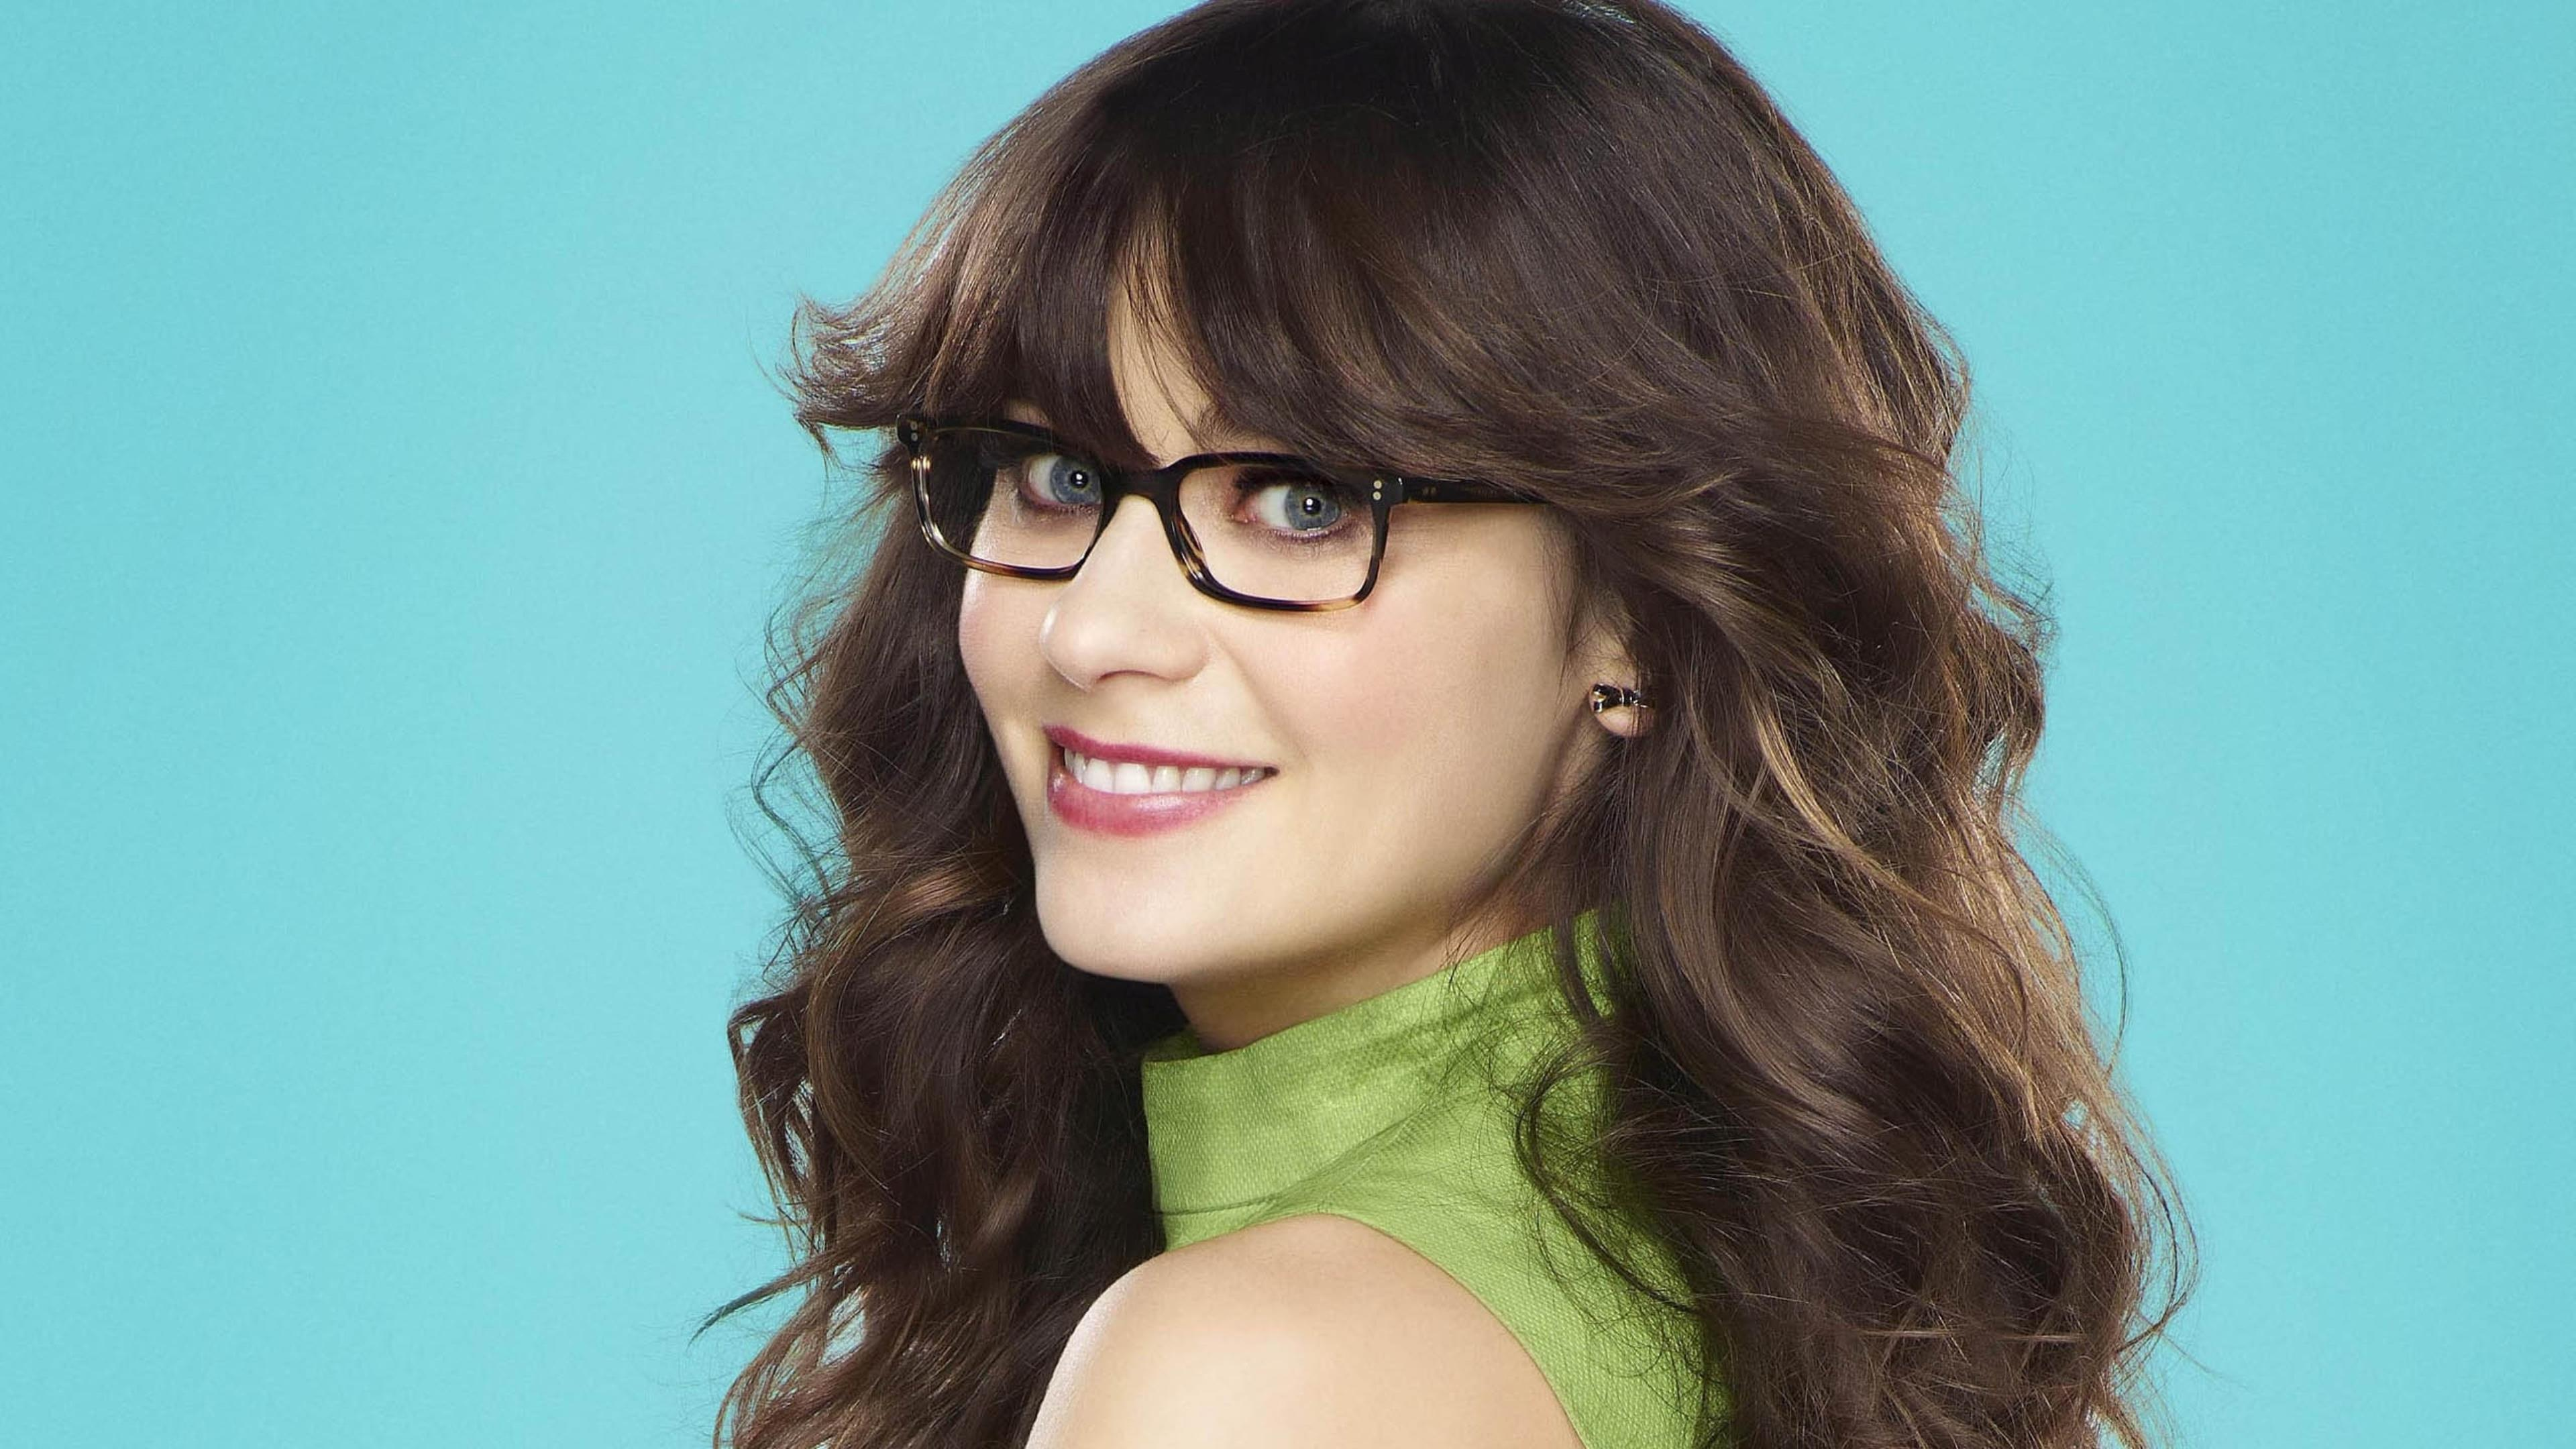 zooey deschanel 4k